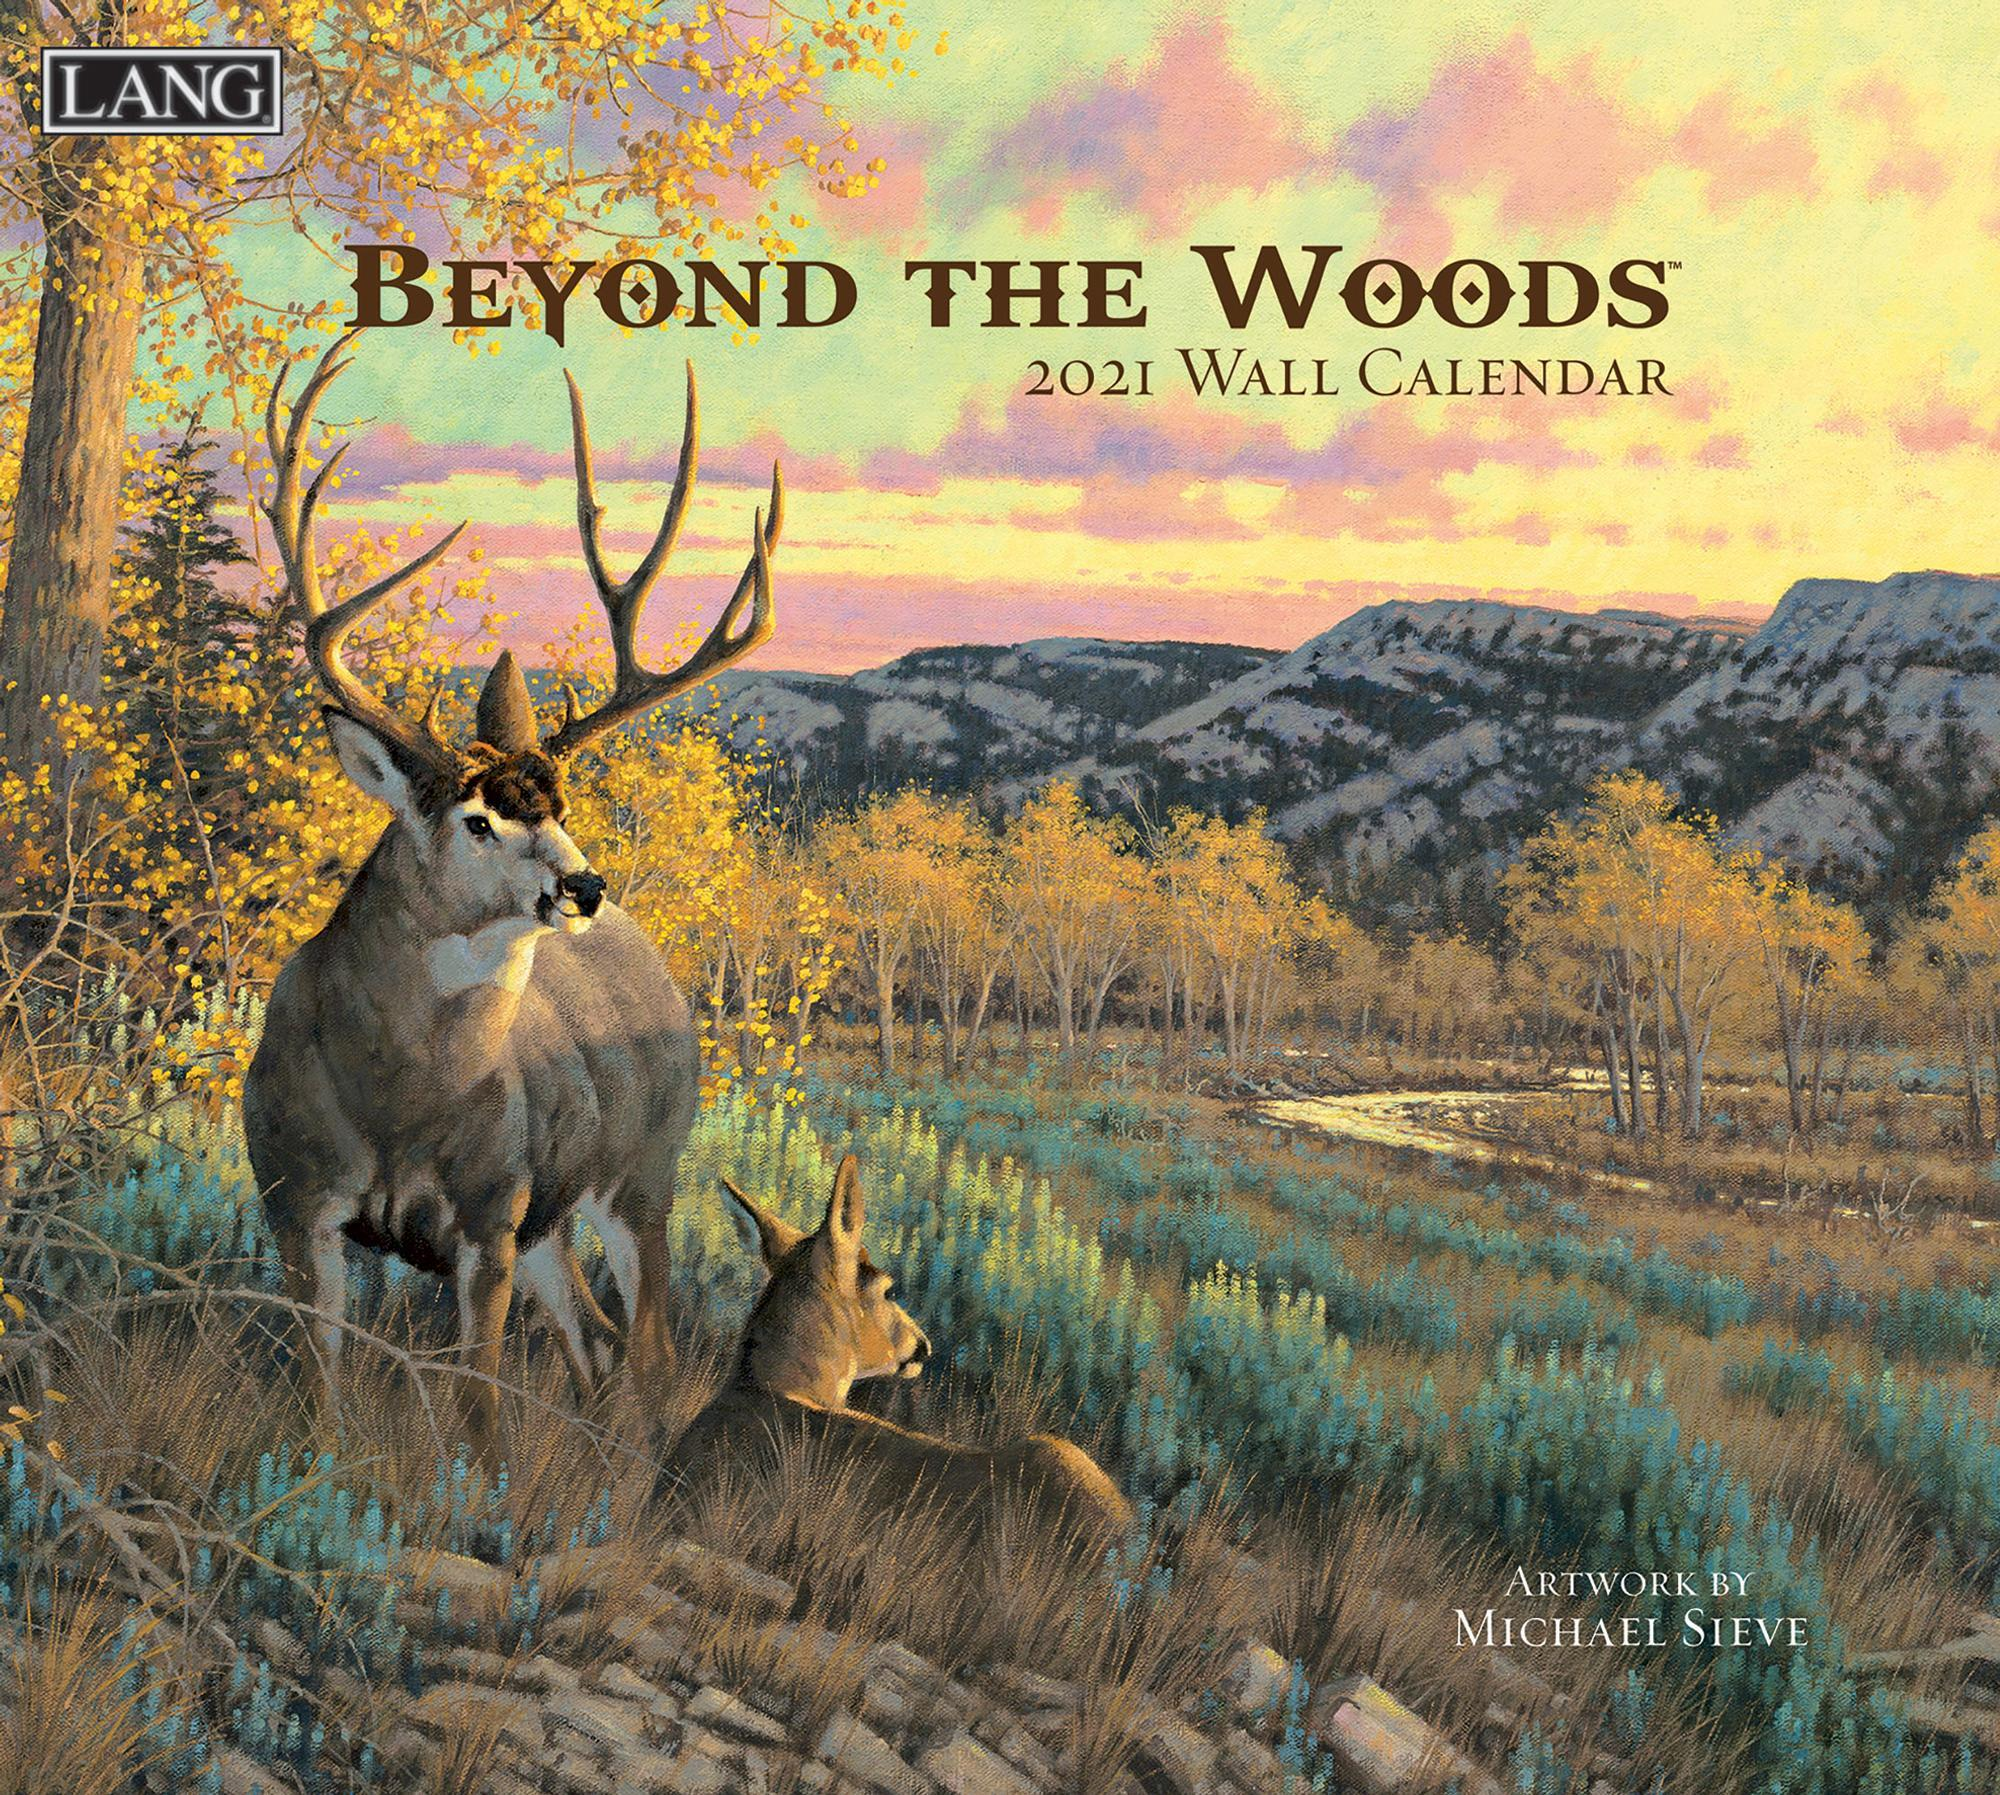 Beyond the Woods Calendar